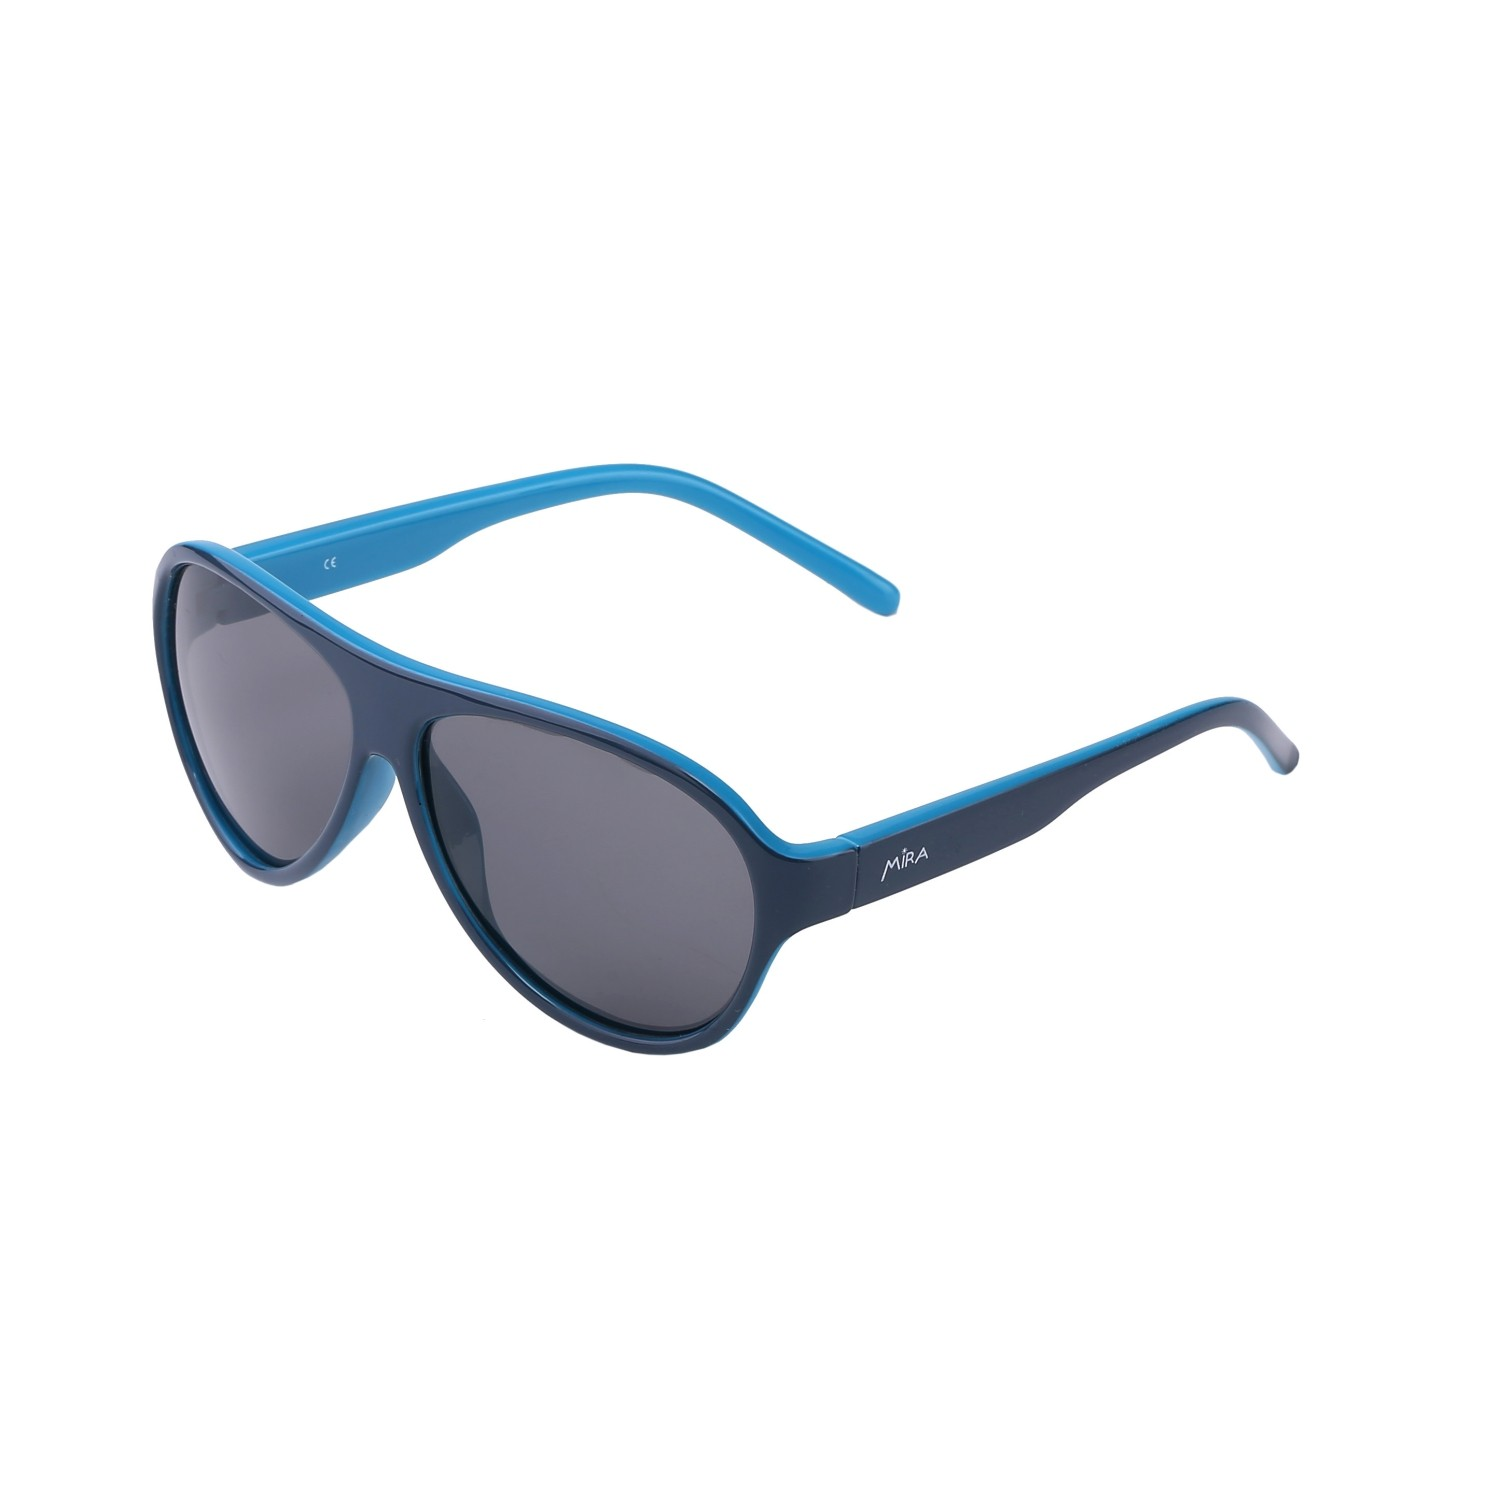 ed9324bc9b3 MIRA MR-100 Unisex Kids Aviator Sunglasses - Polarized Lenses with 100% UVA  and UVB Protection - Online Only